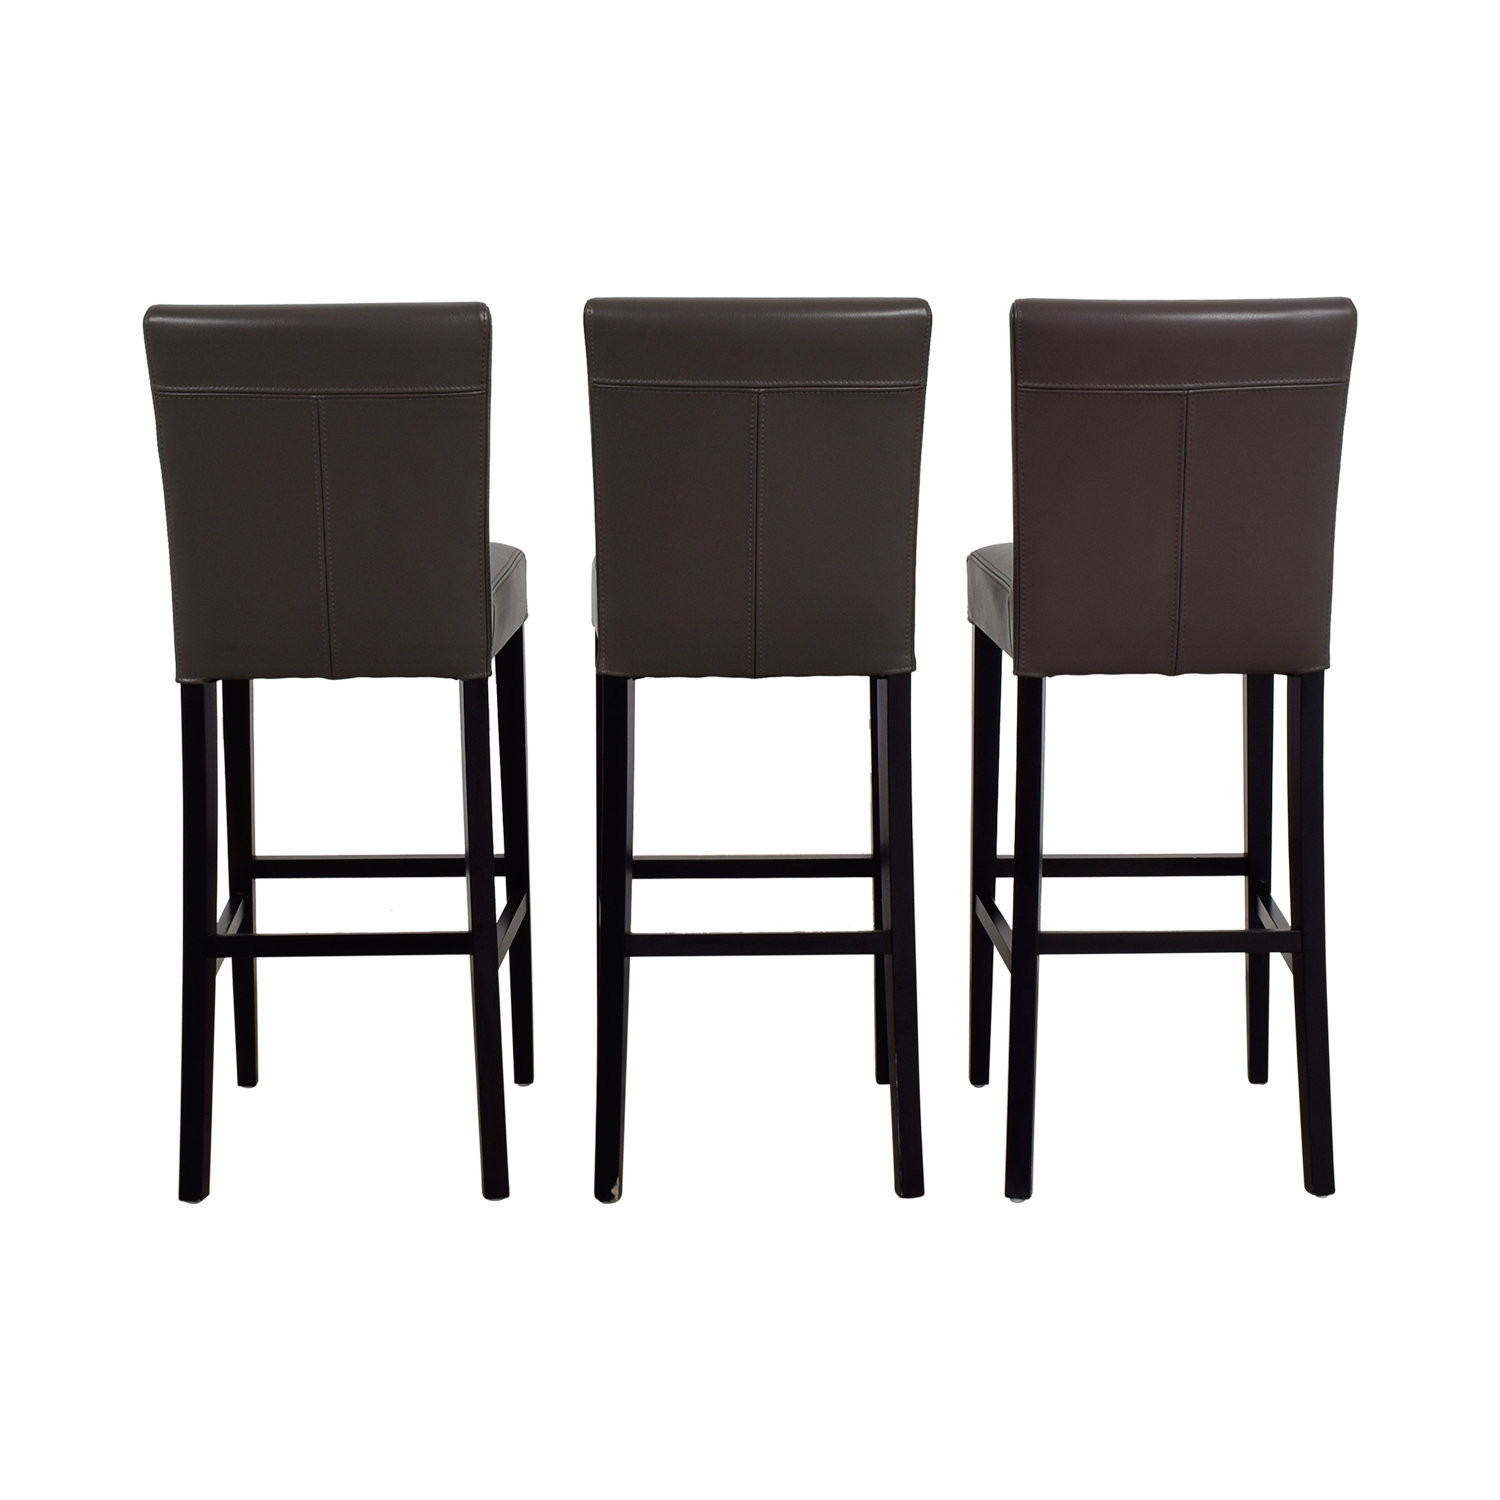 Crate & Barrel Crate & Barrel Lowe Smoke Leather Bar Stools Sofas